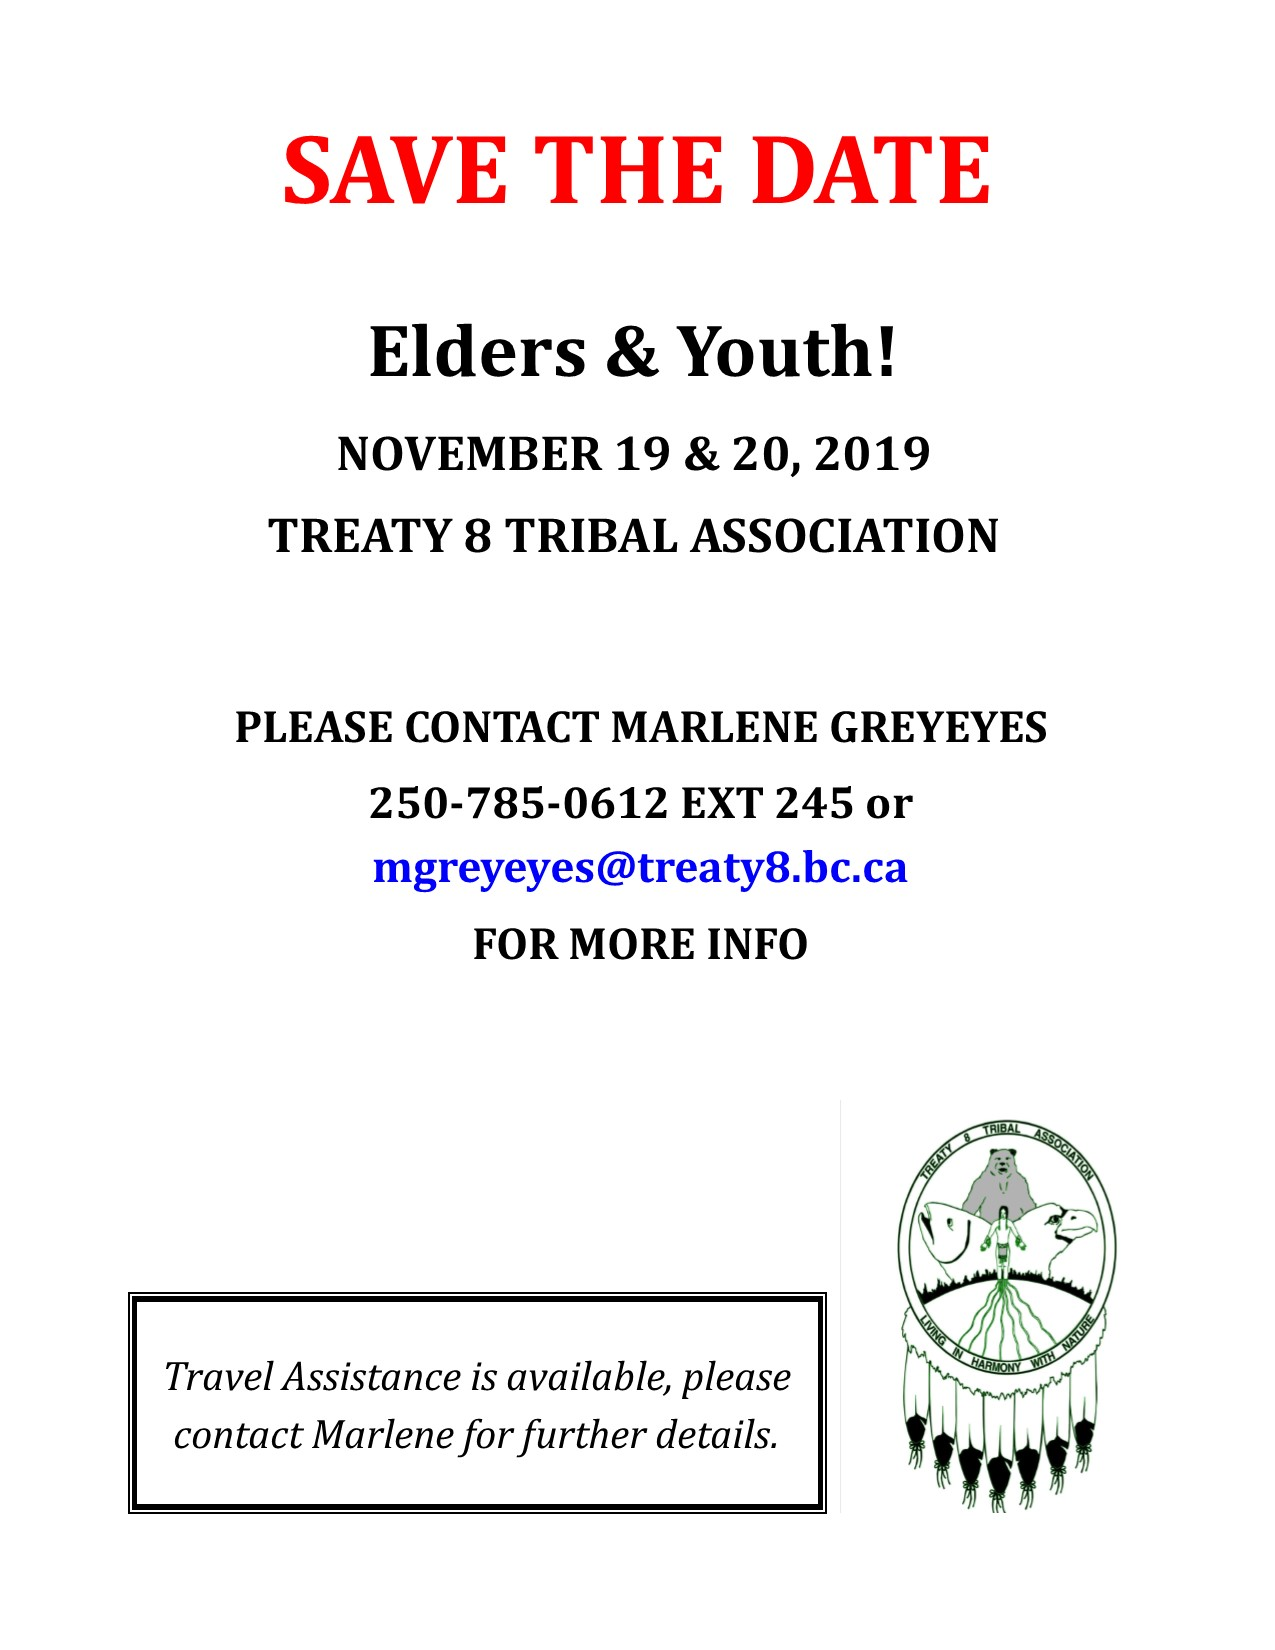 ELDERS AND YOUTH!! Save the Date @ Treaty 8 Tribal Association